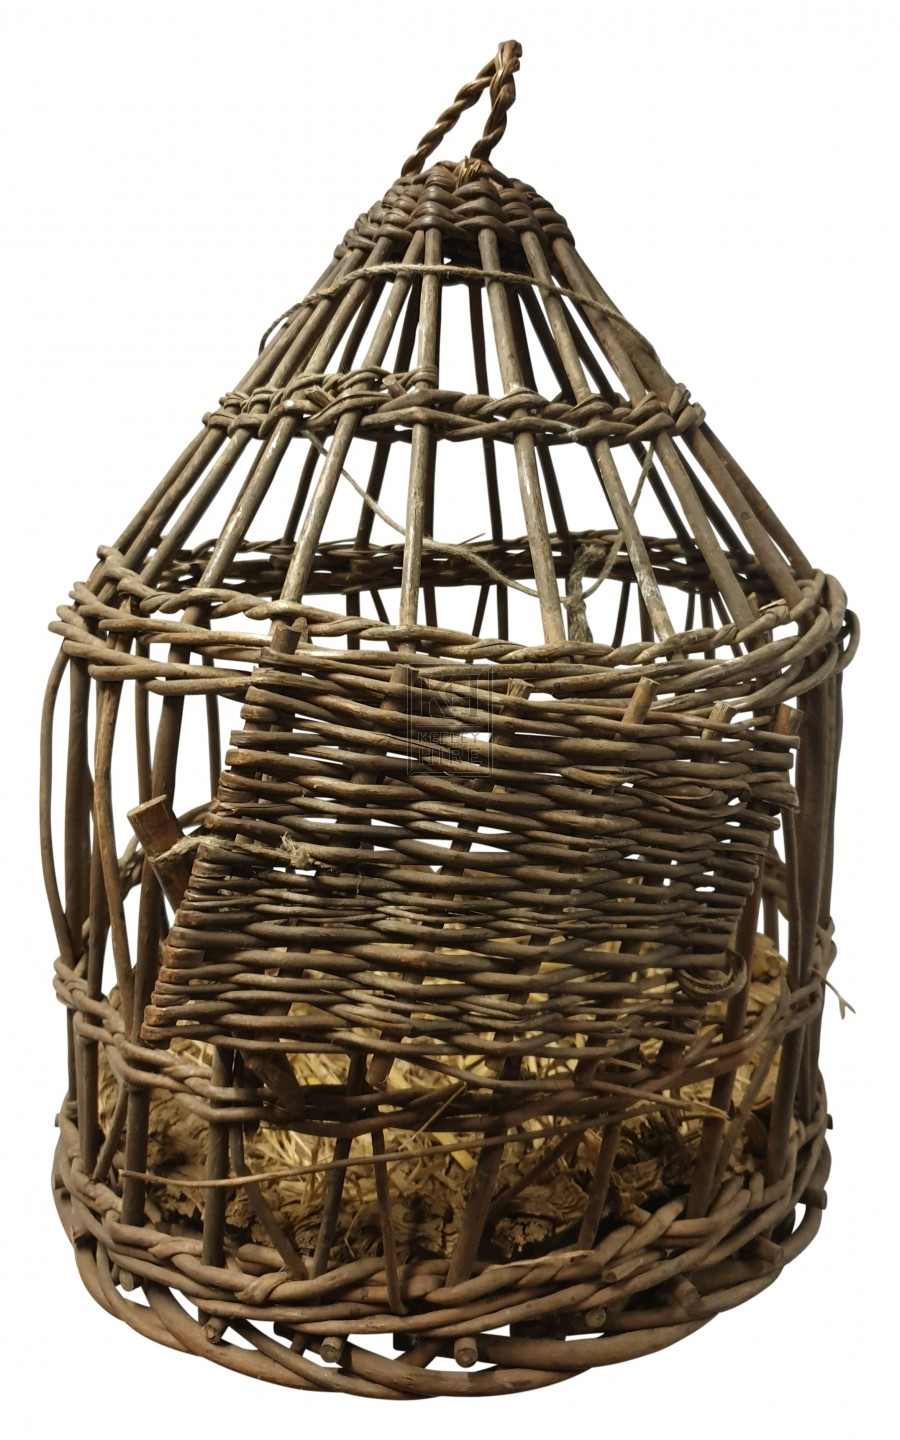 Wicker bird cage with door